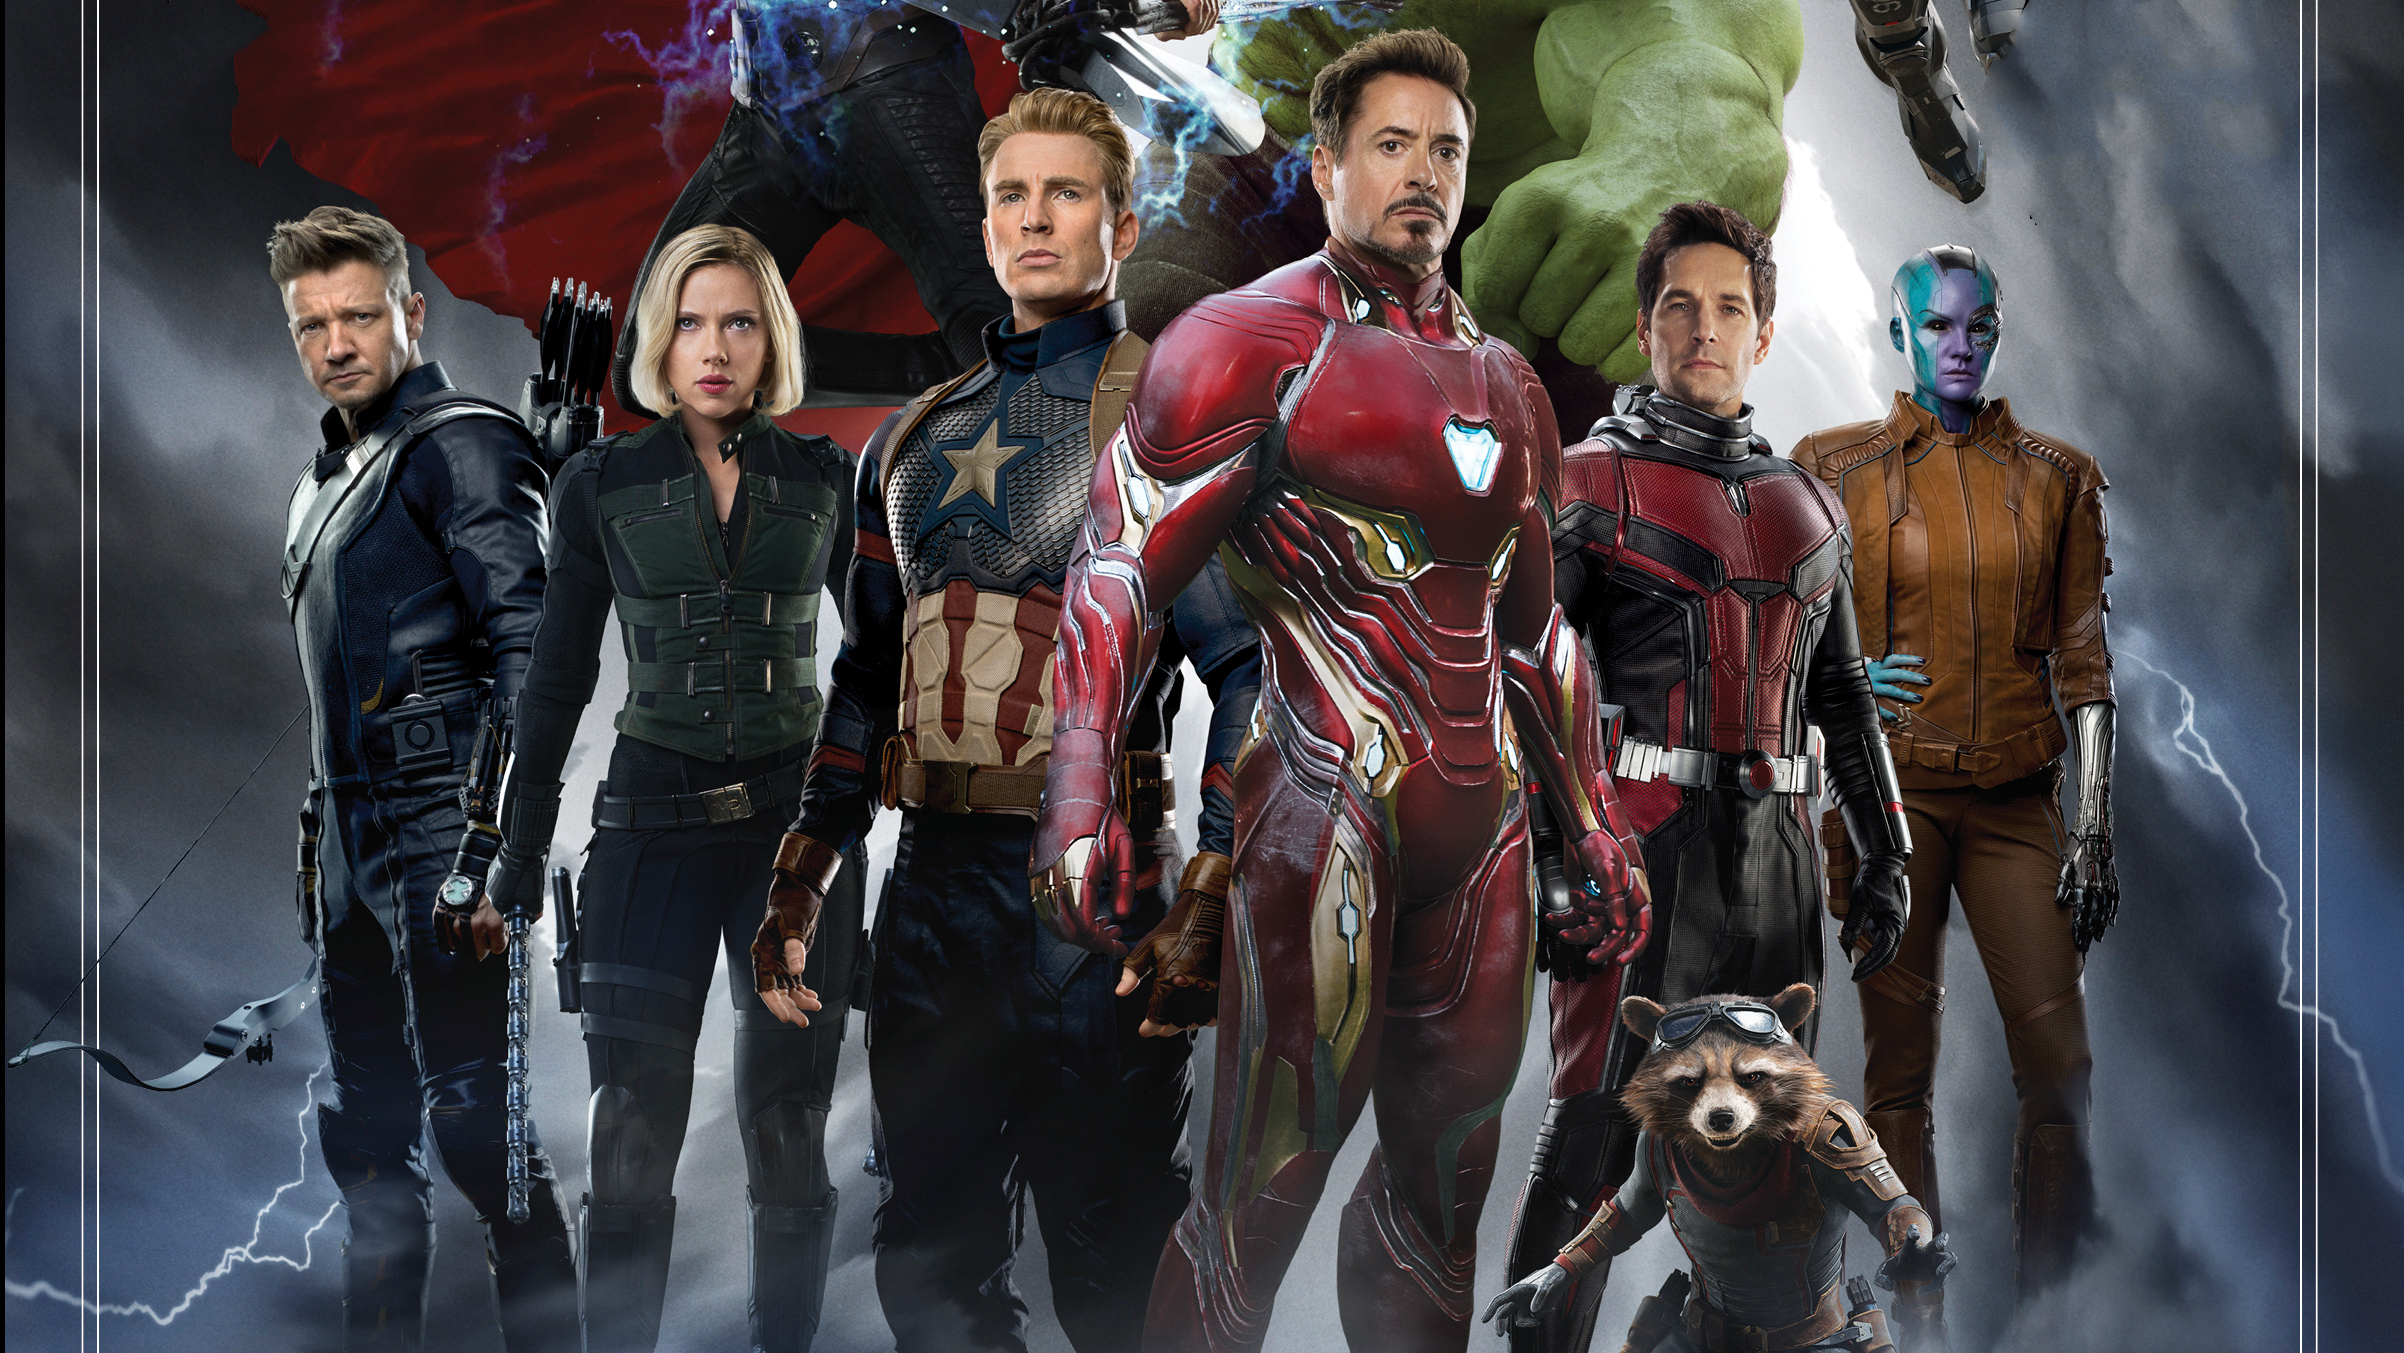 Avengers Endgame 2019 Entertainment Weekly Hd Movies 4k Wallpapers Images Backgrounds Photos And Pictures